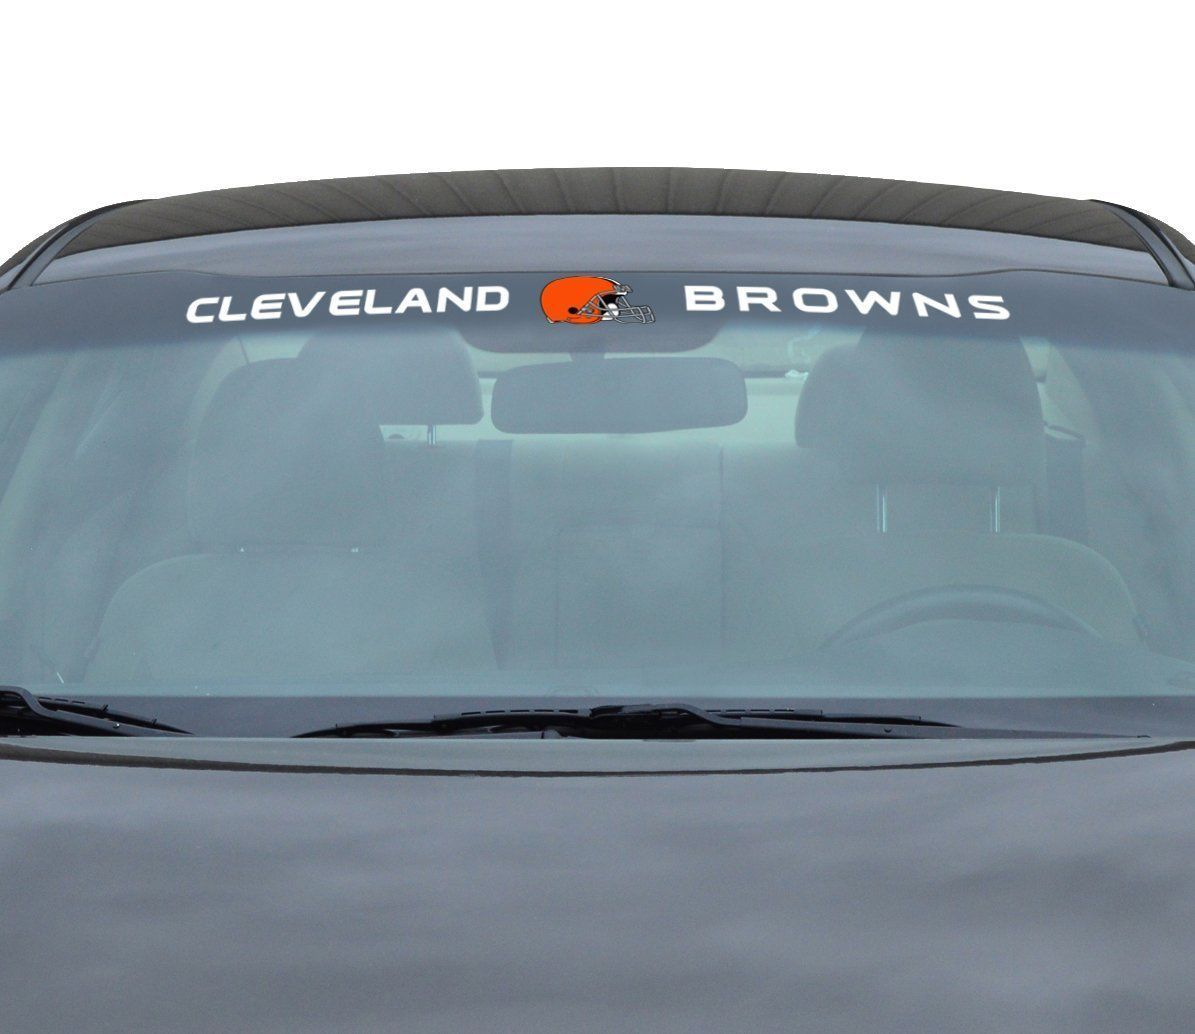 "CLEVELAND BROWNS 35"" X 4"" WINDSHIELD REAR WINDOW DECAL CAR TRUCK NFL FOOTBALL"